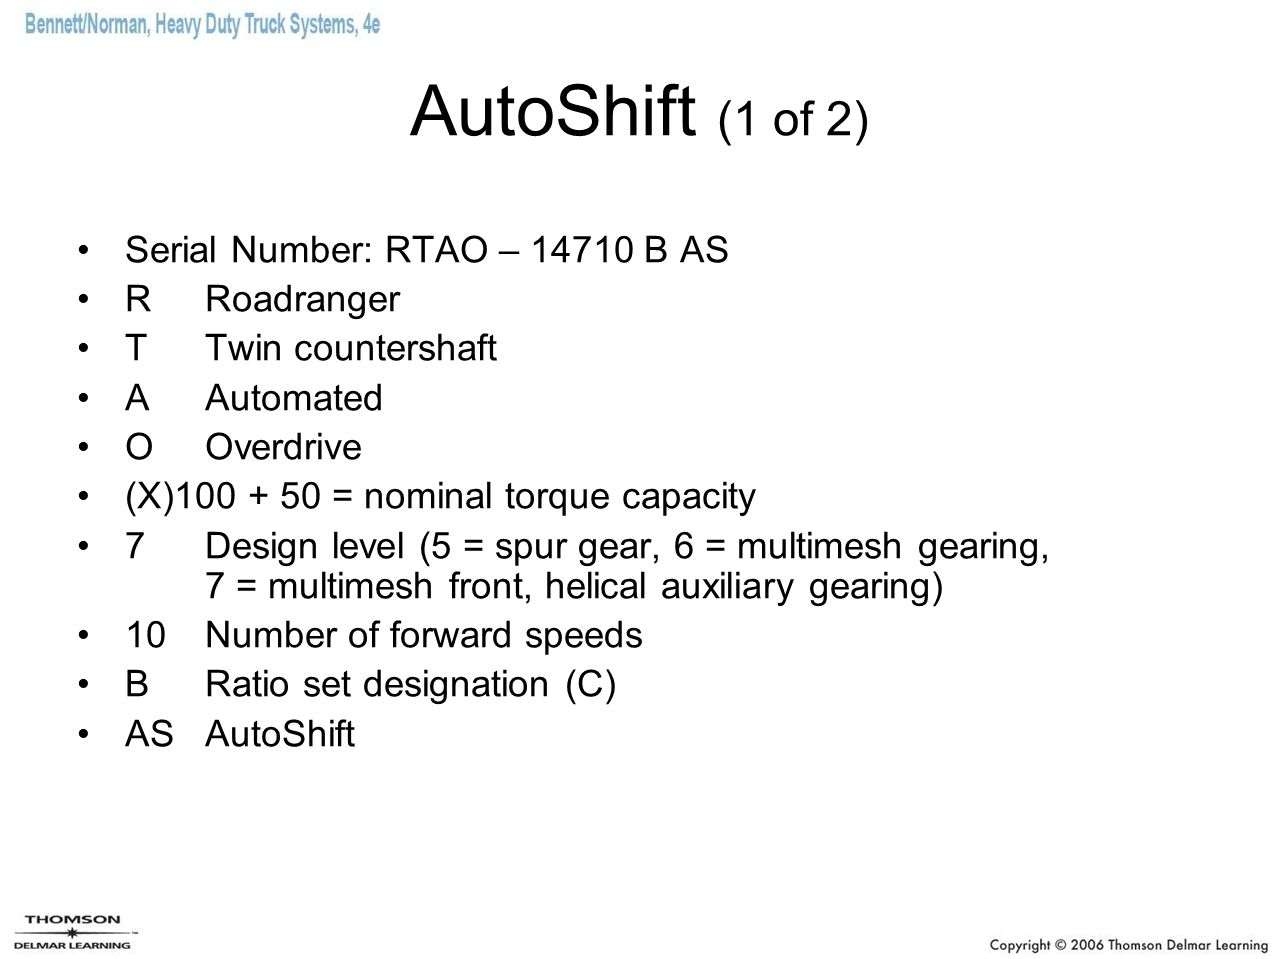 AutoShift (1 of 2) Serial Number: RTAO – 14710 B AS R Roadranger T Twin countershaft A Automated O Overdrive (X)100 + 50 = nominal torque capacity 7 D